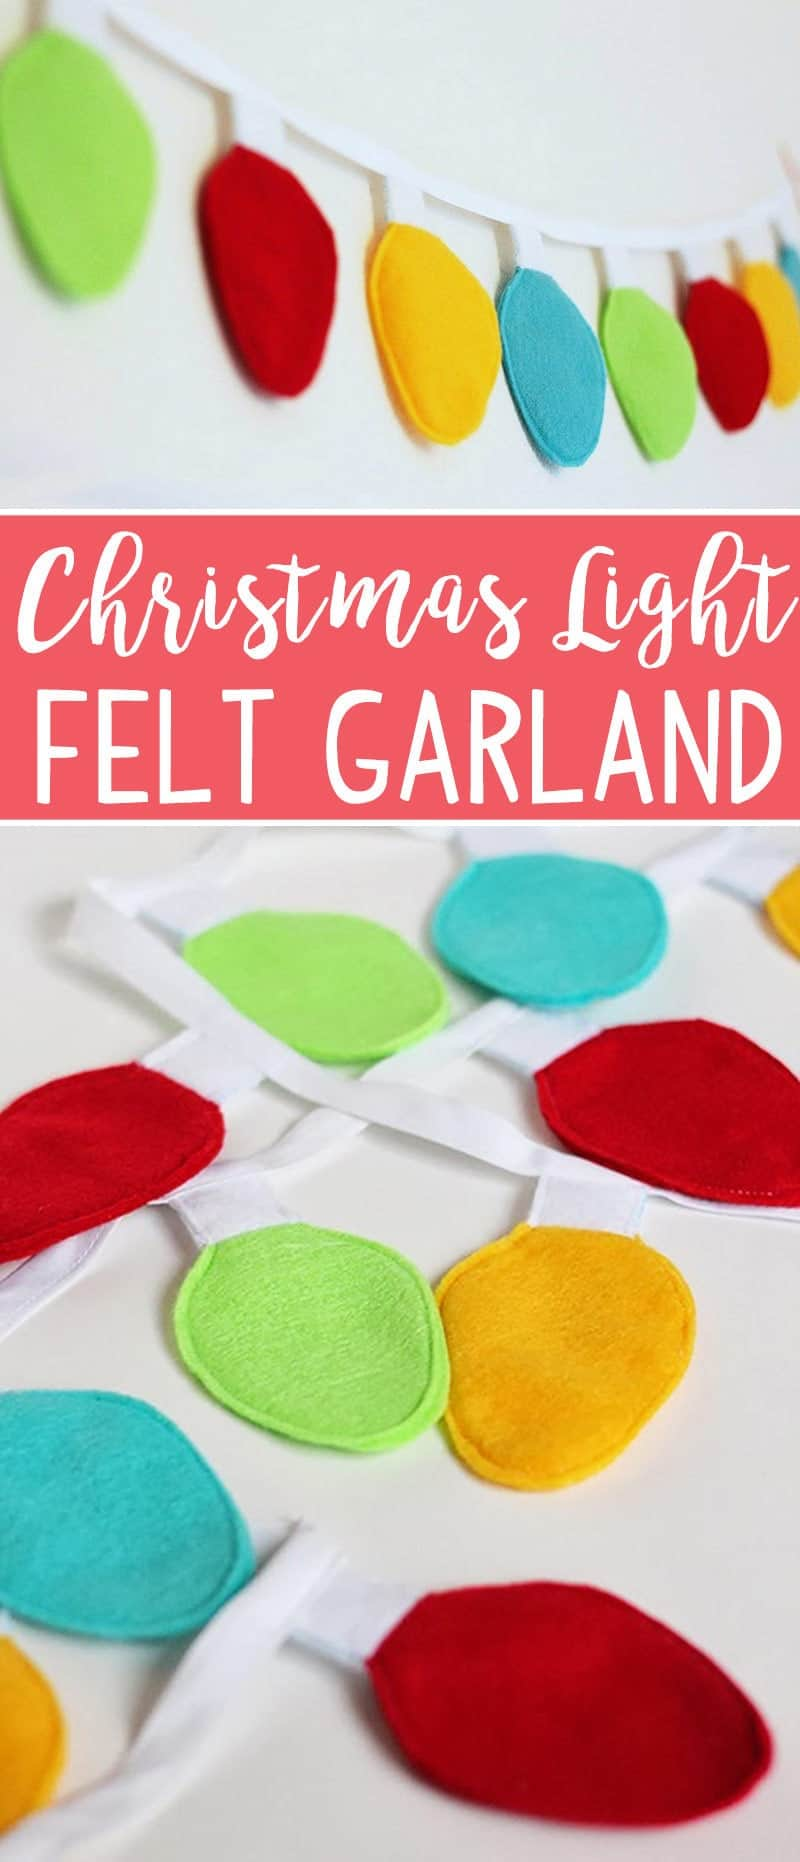 This Christmas Light Felt Garland Tutorial is a super easy craft, perfect for the holidays!  (Printable Christmas Light template included.)